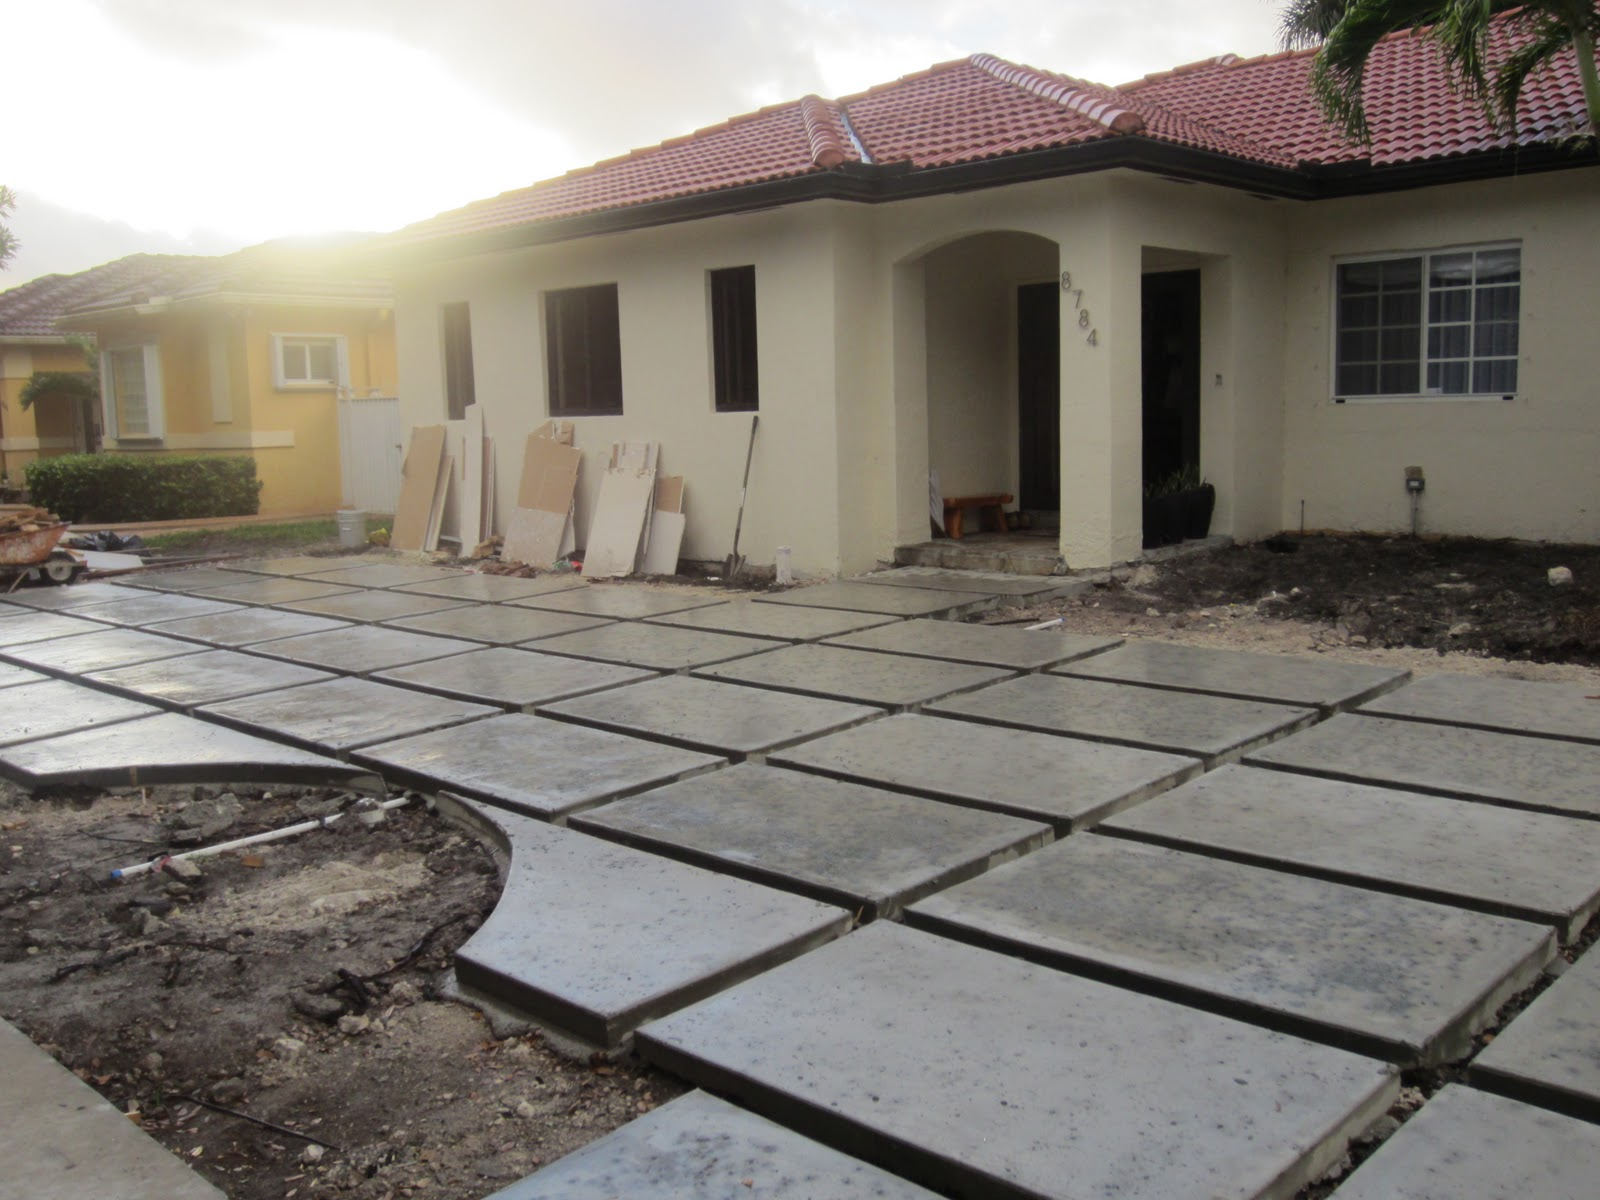 The Cuban In My Coffee: Modern Concrete Driveway Update, Grass Or ...